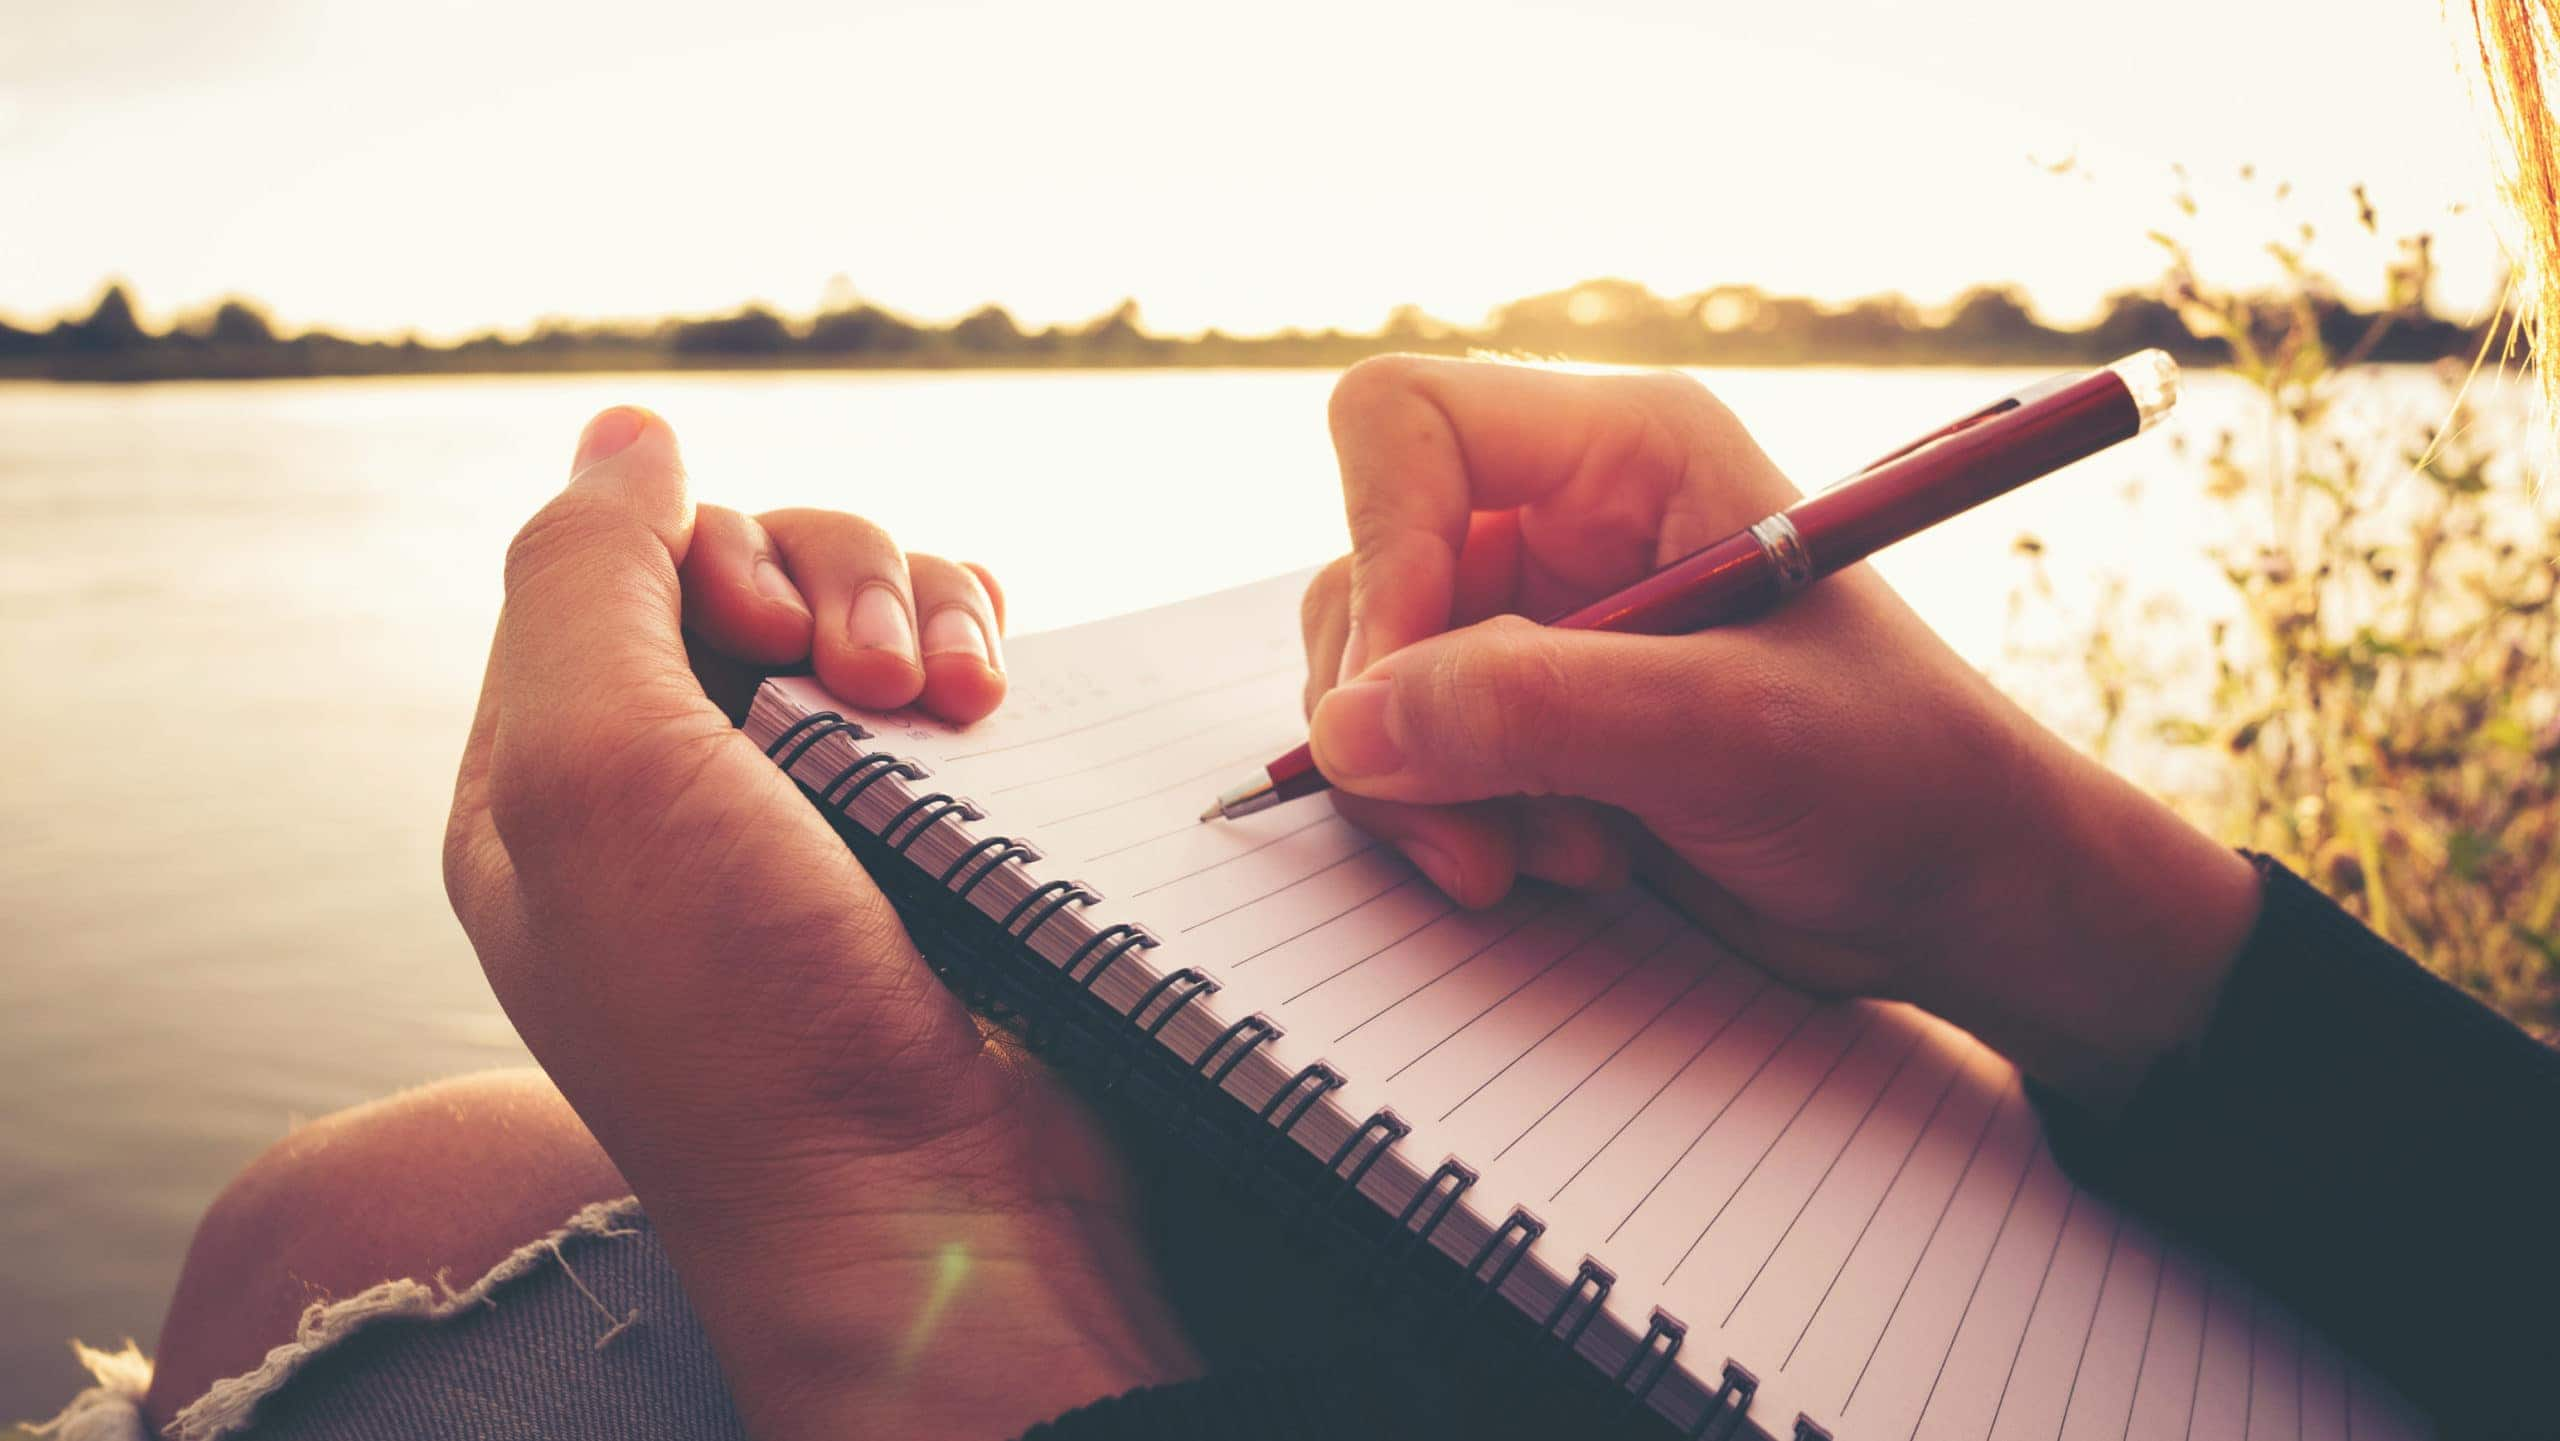 Person writing in journal near lake